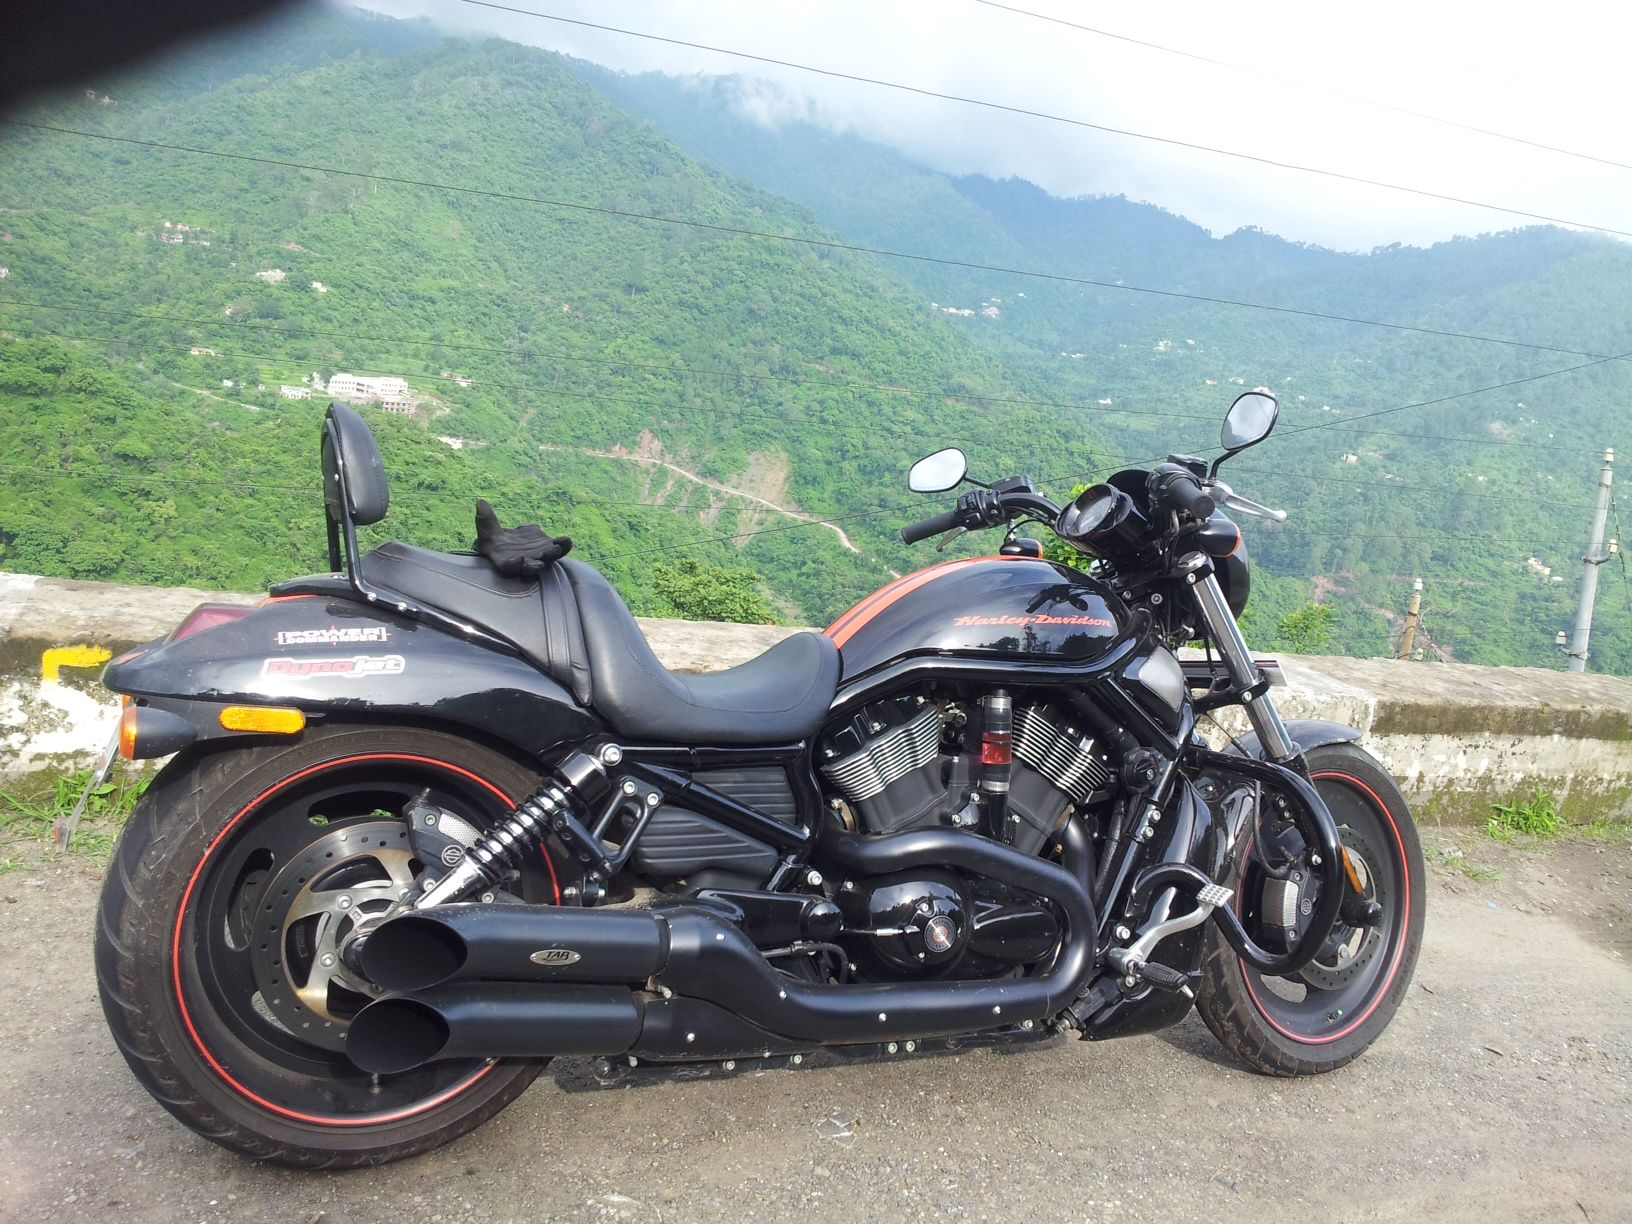 vishesh chaudhary 39 s harley davidson vrscdx night rod special with tab performance turn out. Black Bedroom Furniture Sets. Home Design Ideas